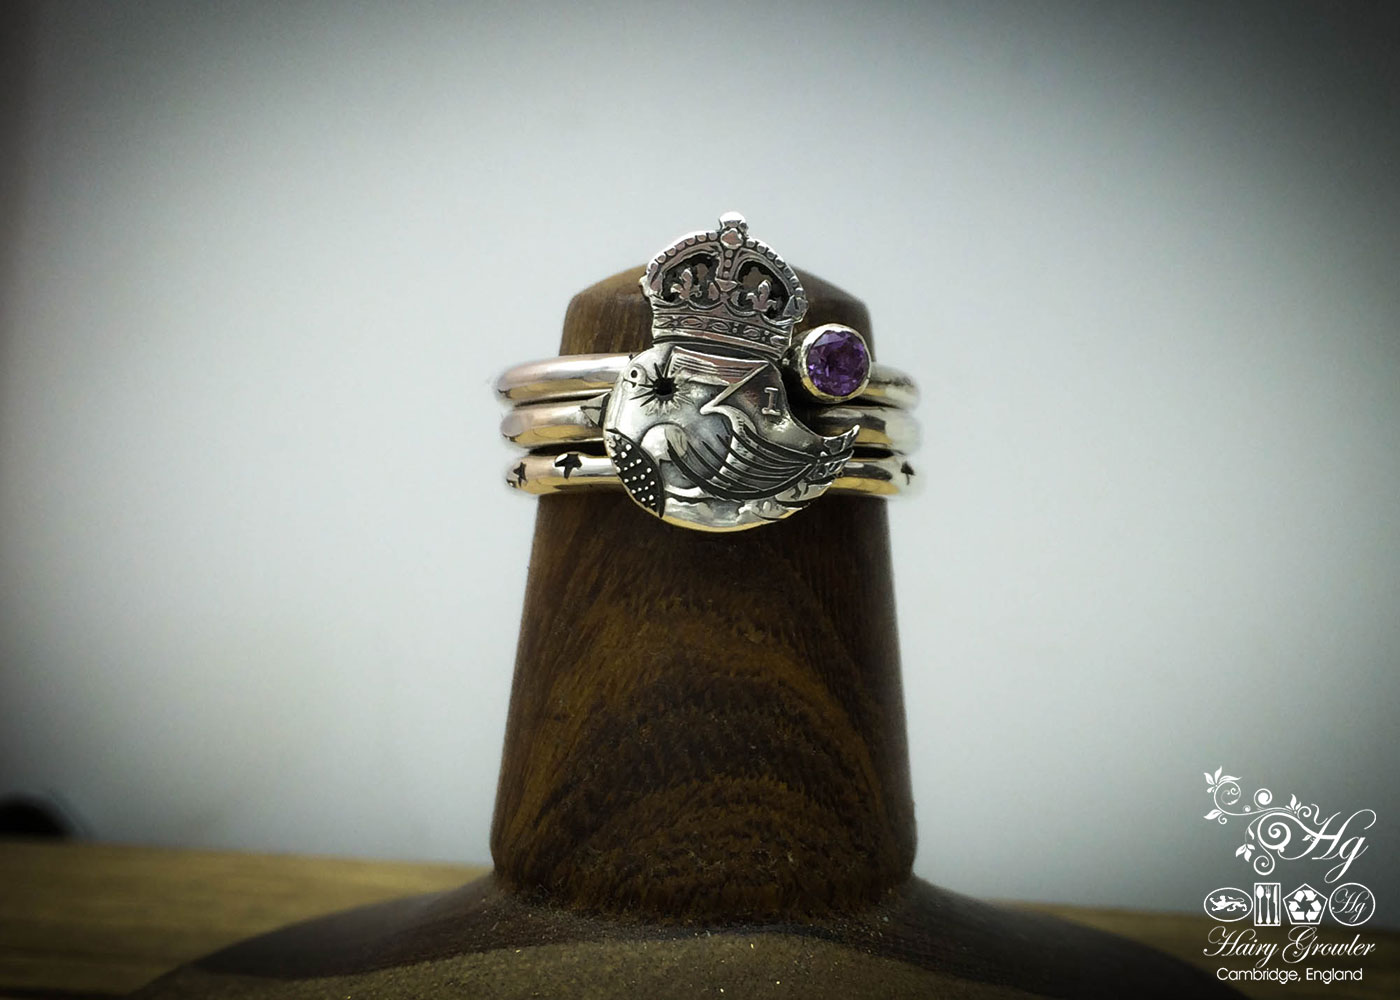 The 'teeny weeny bird queen' recycled silver threepence coin ring. Handcrafted and recycled silver bird ring